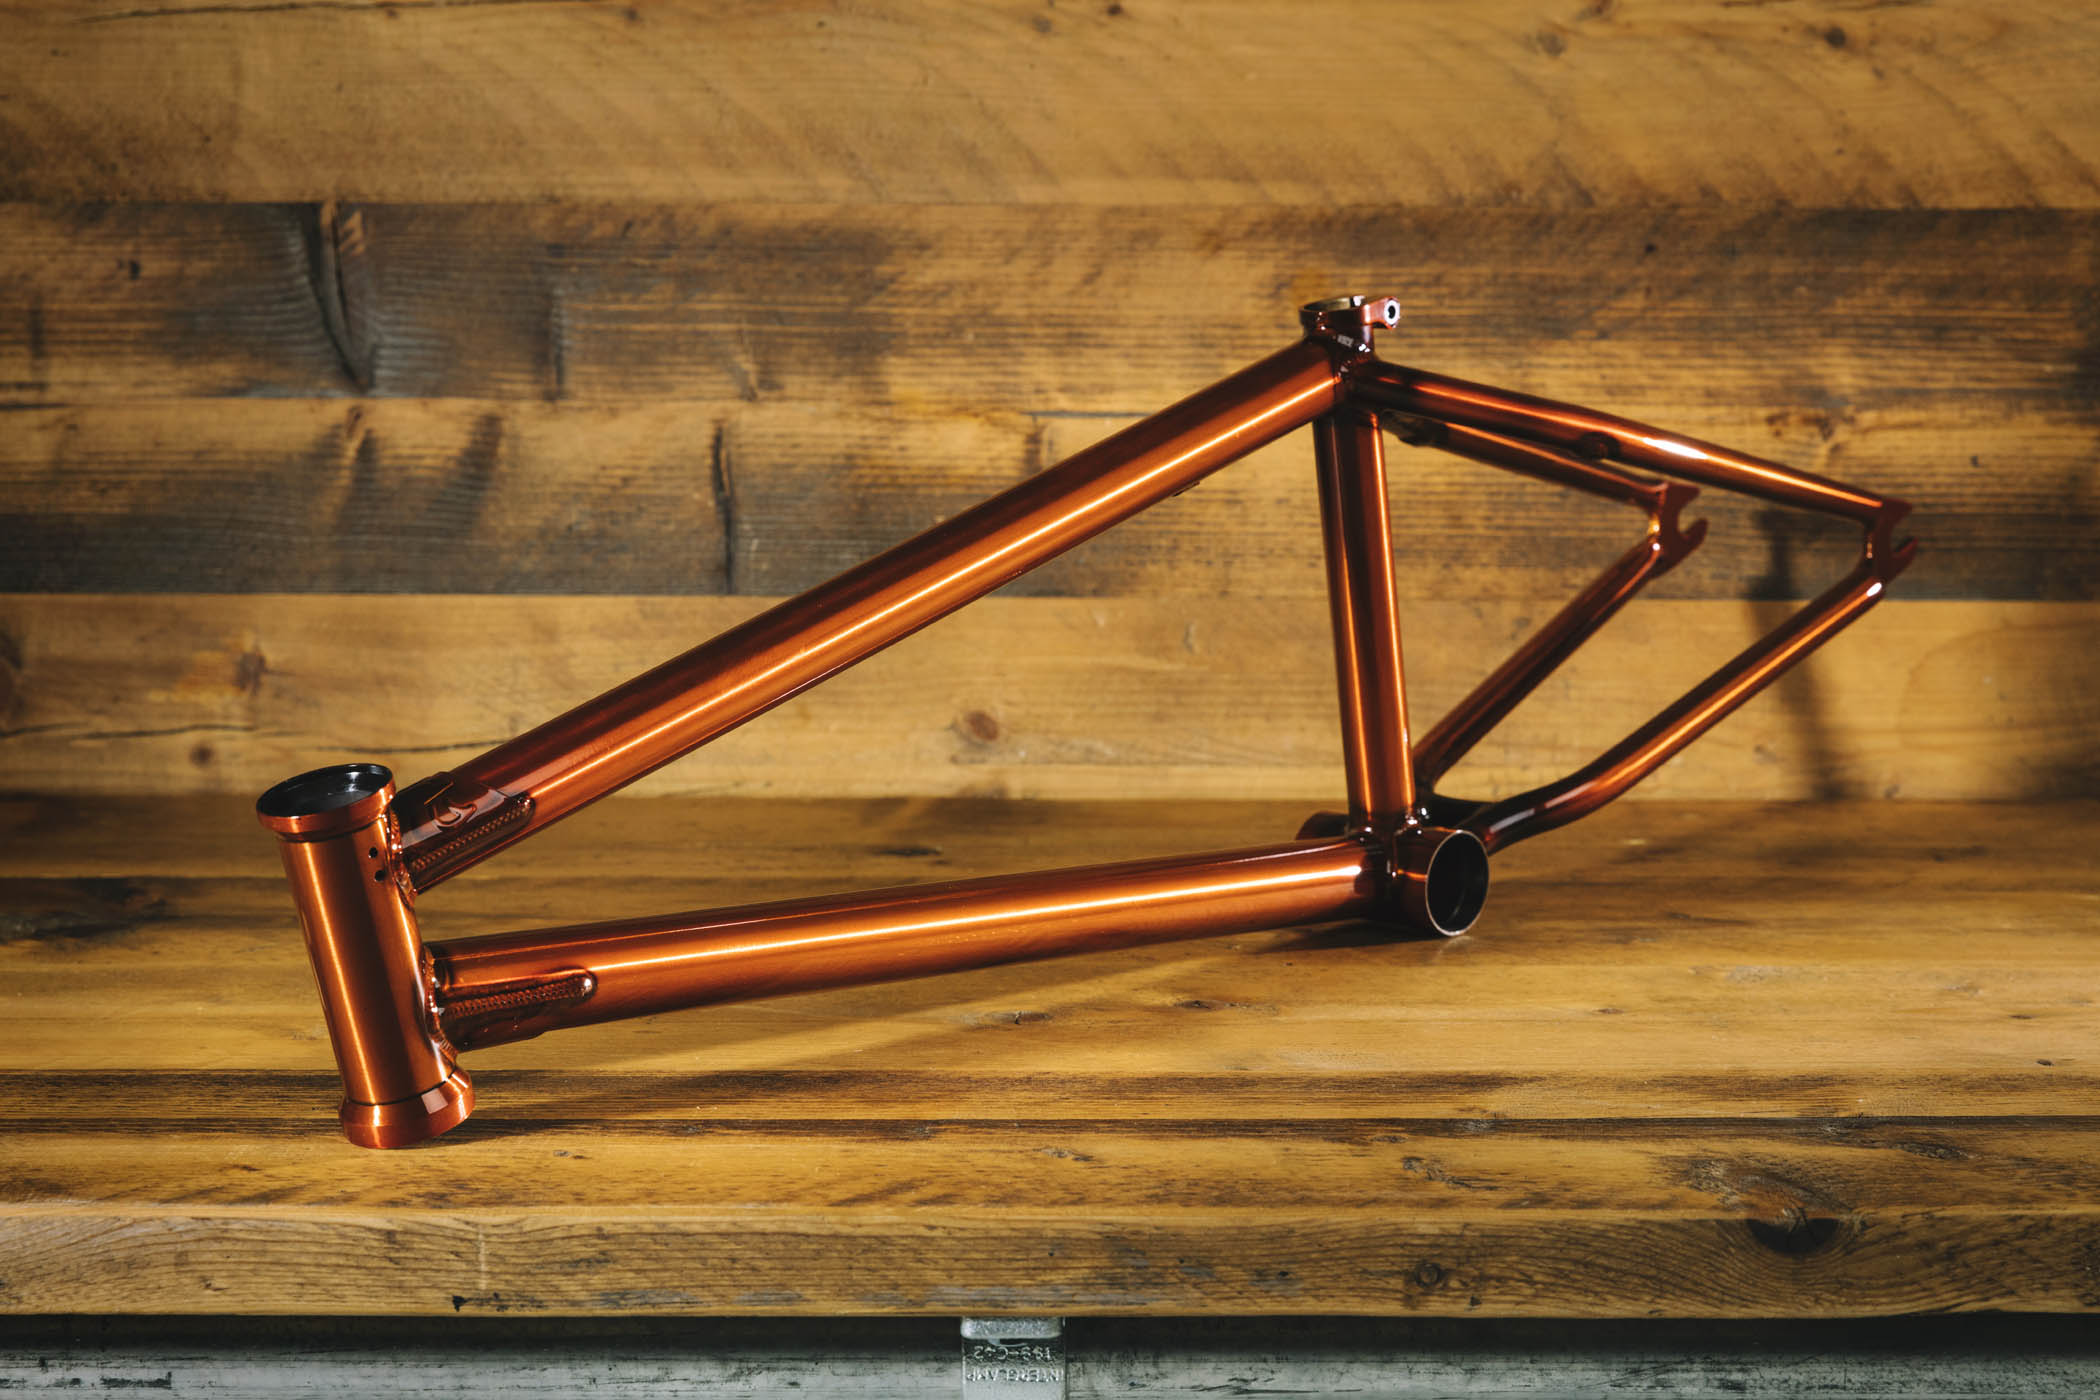 CULT RICANY SHORTY FRAME – REVIEW